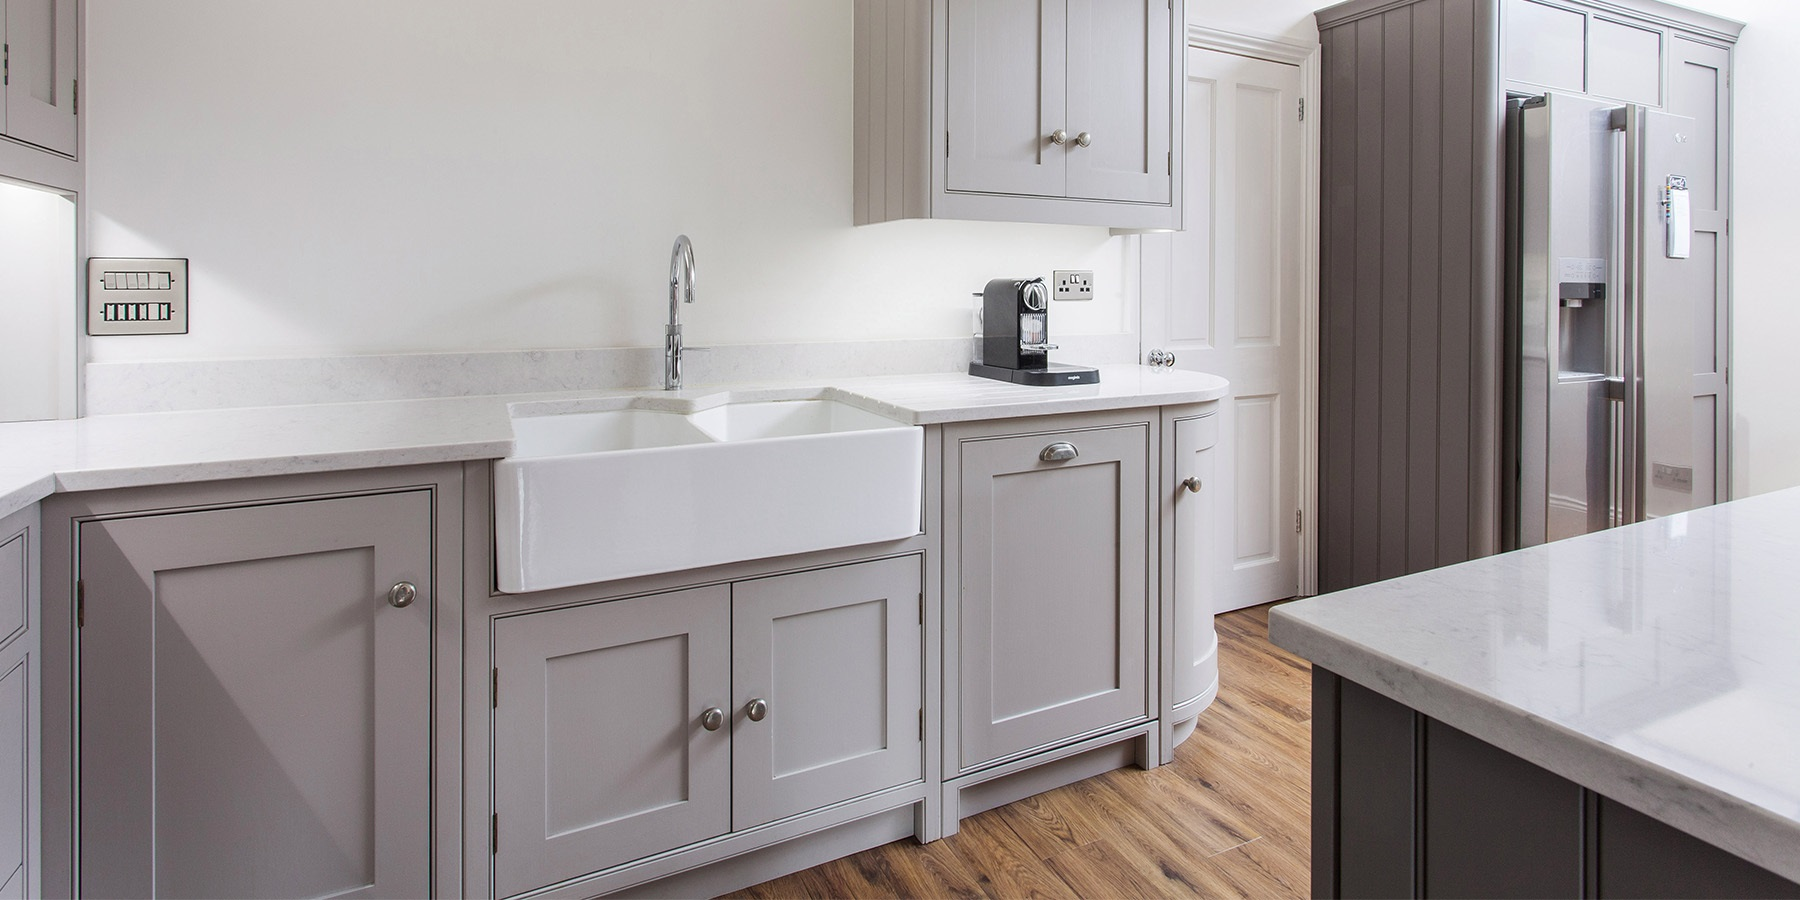 Freestanding Style Shaker Kitchen - Burlanes bespoke freestanding style Wellsdown grey kitchen with white worktops.